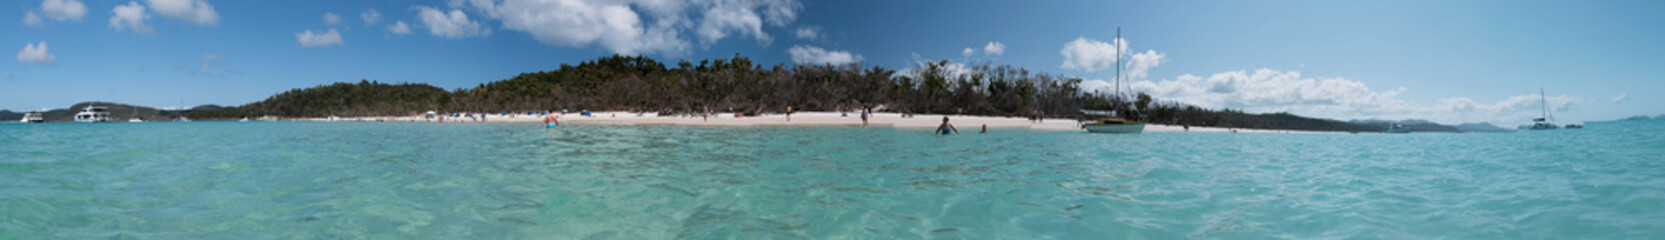 Whitehaven Beach, Whitsunday - PANORAMA